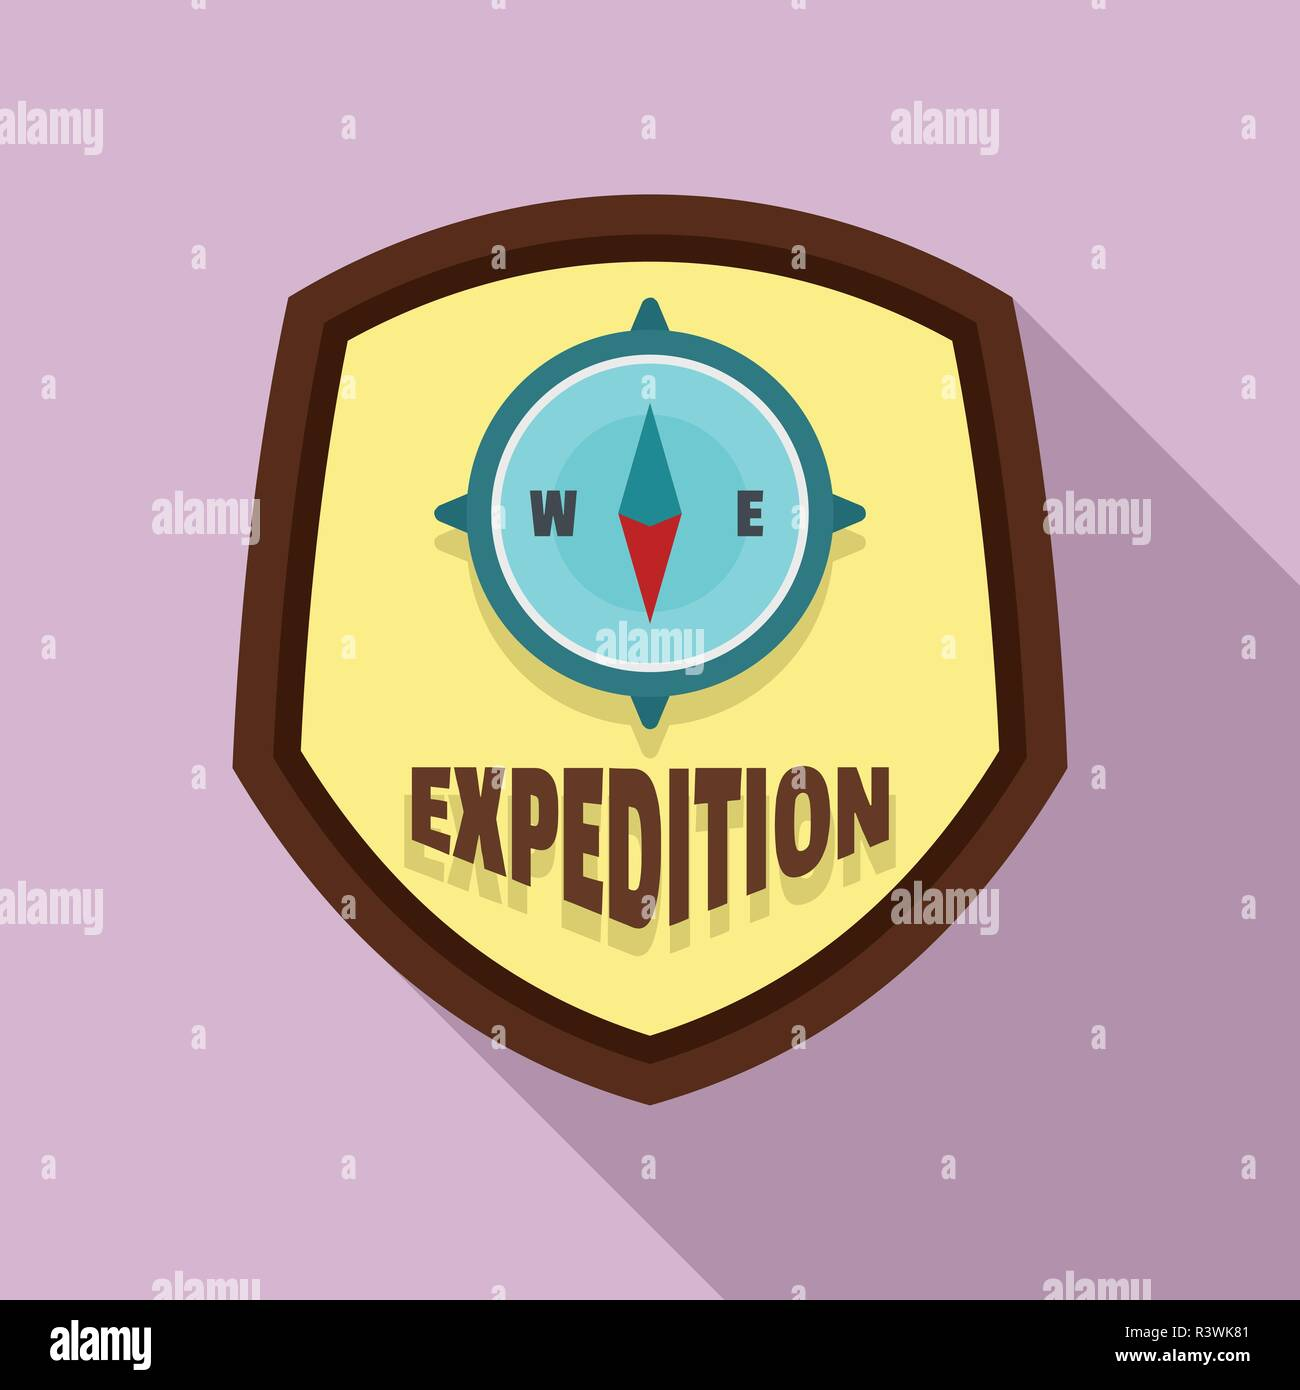 Expedition Logo Flat Illustration Of Expedition Vector Logo For Web